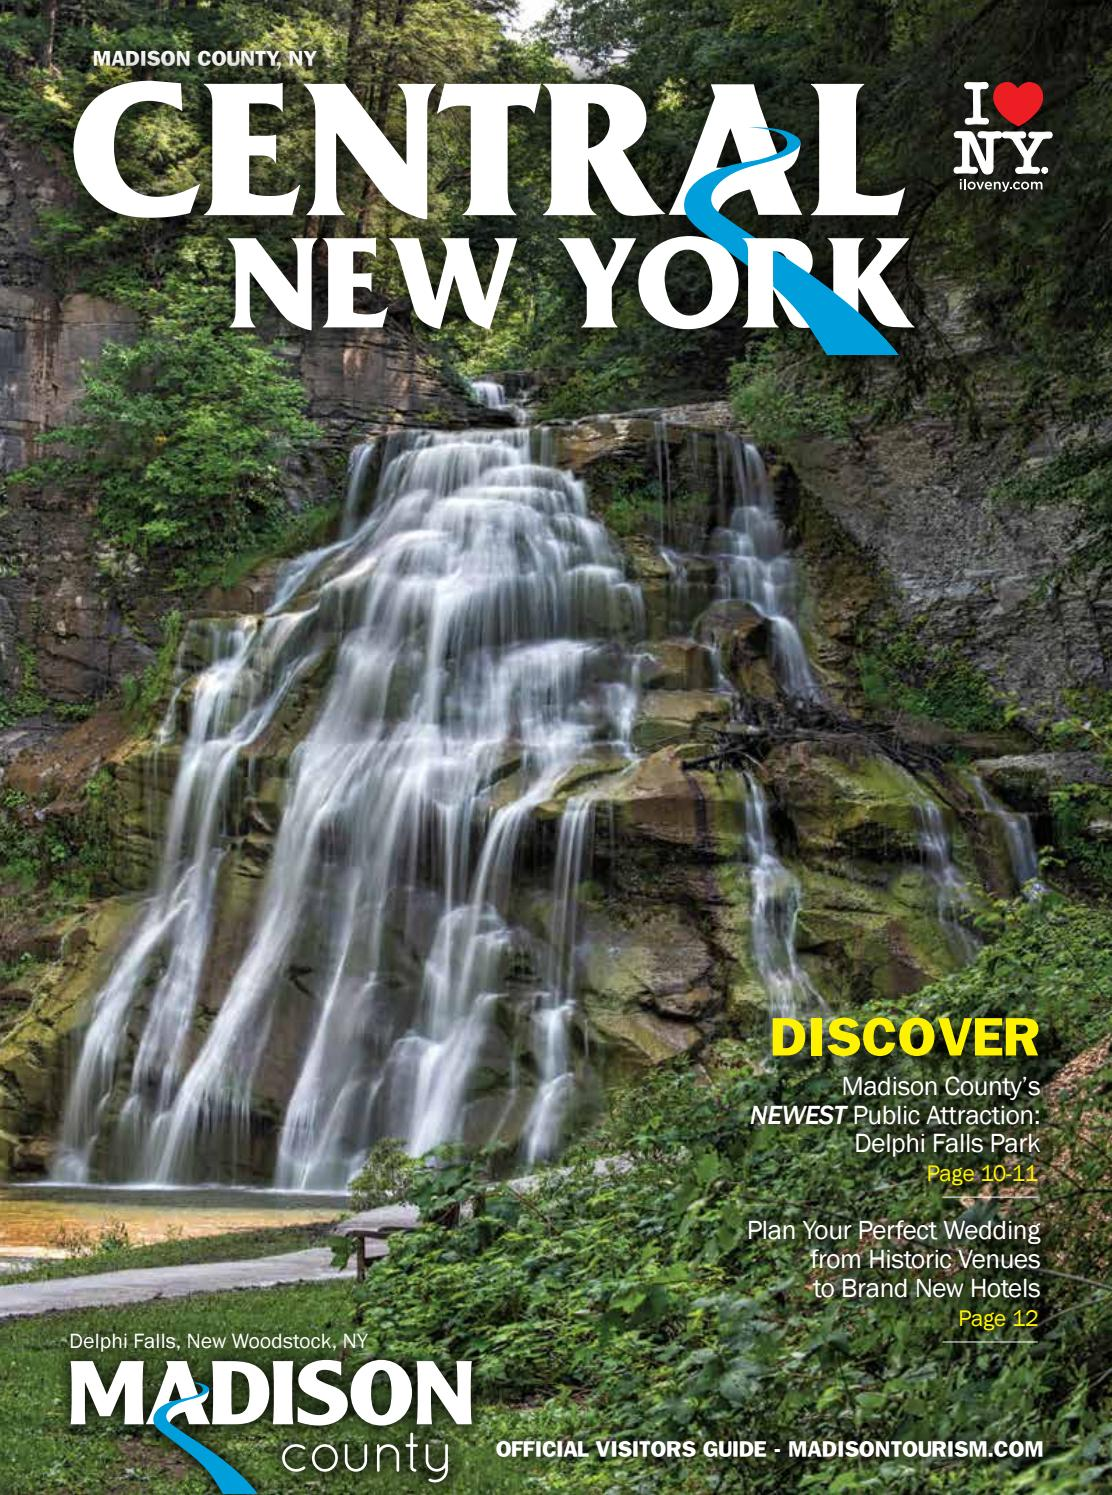 2019 Madison County Visitors Guide By Madison County Central New York Issuu